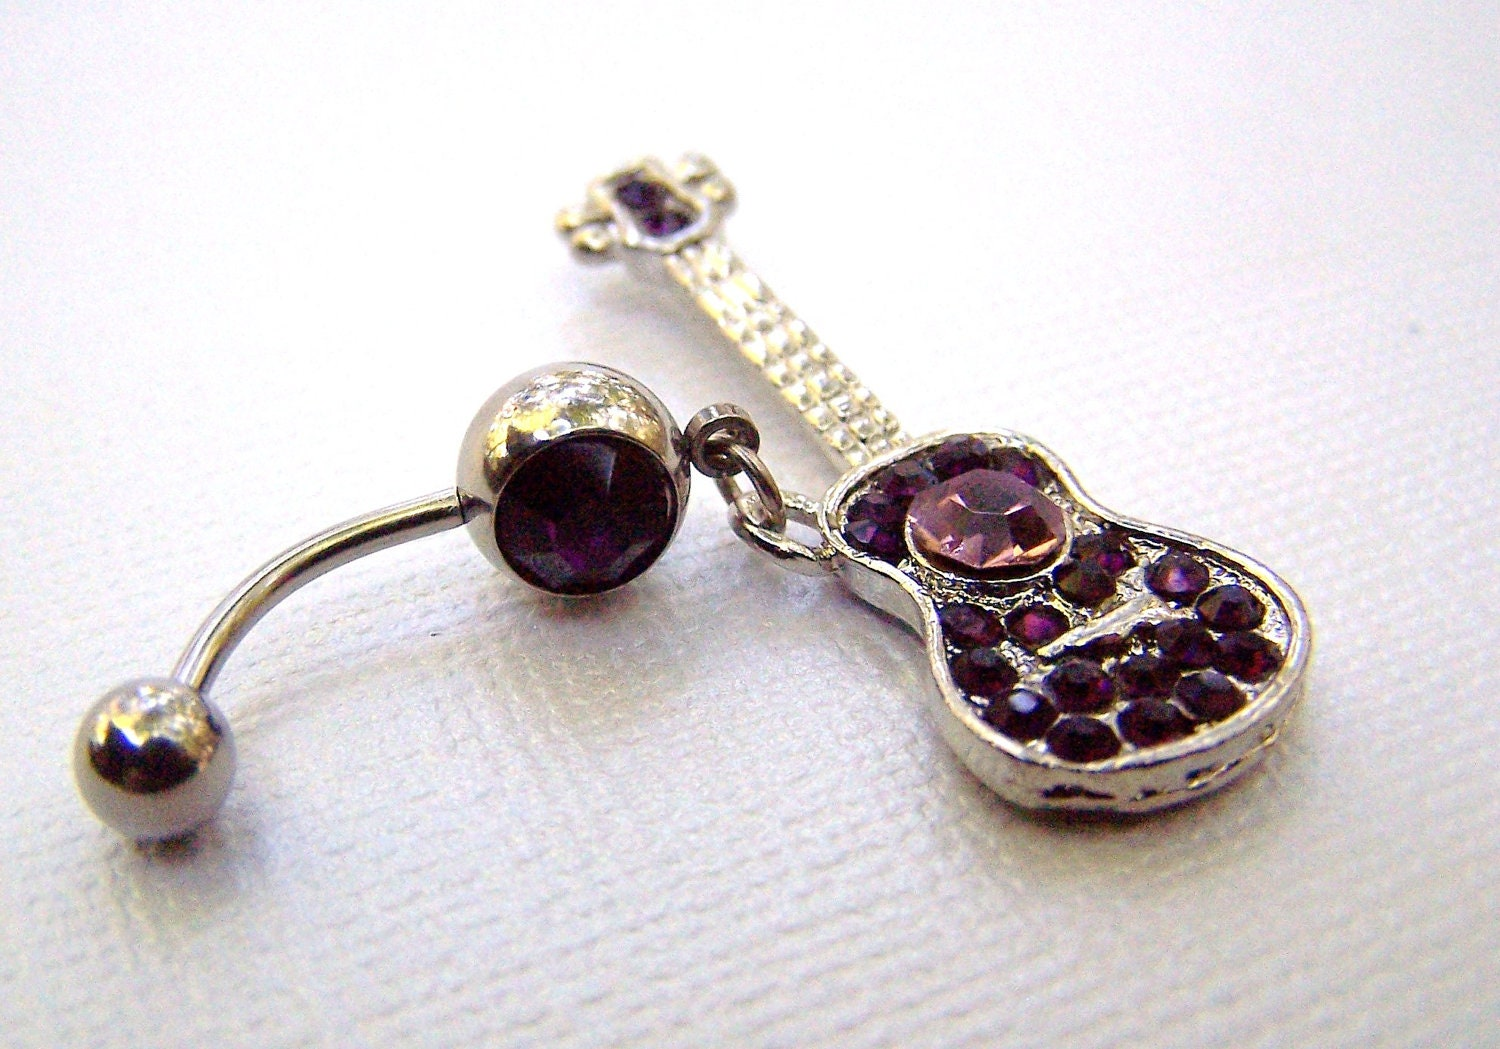 guitar jewelry bellybutton jewelry navel ring belly ring